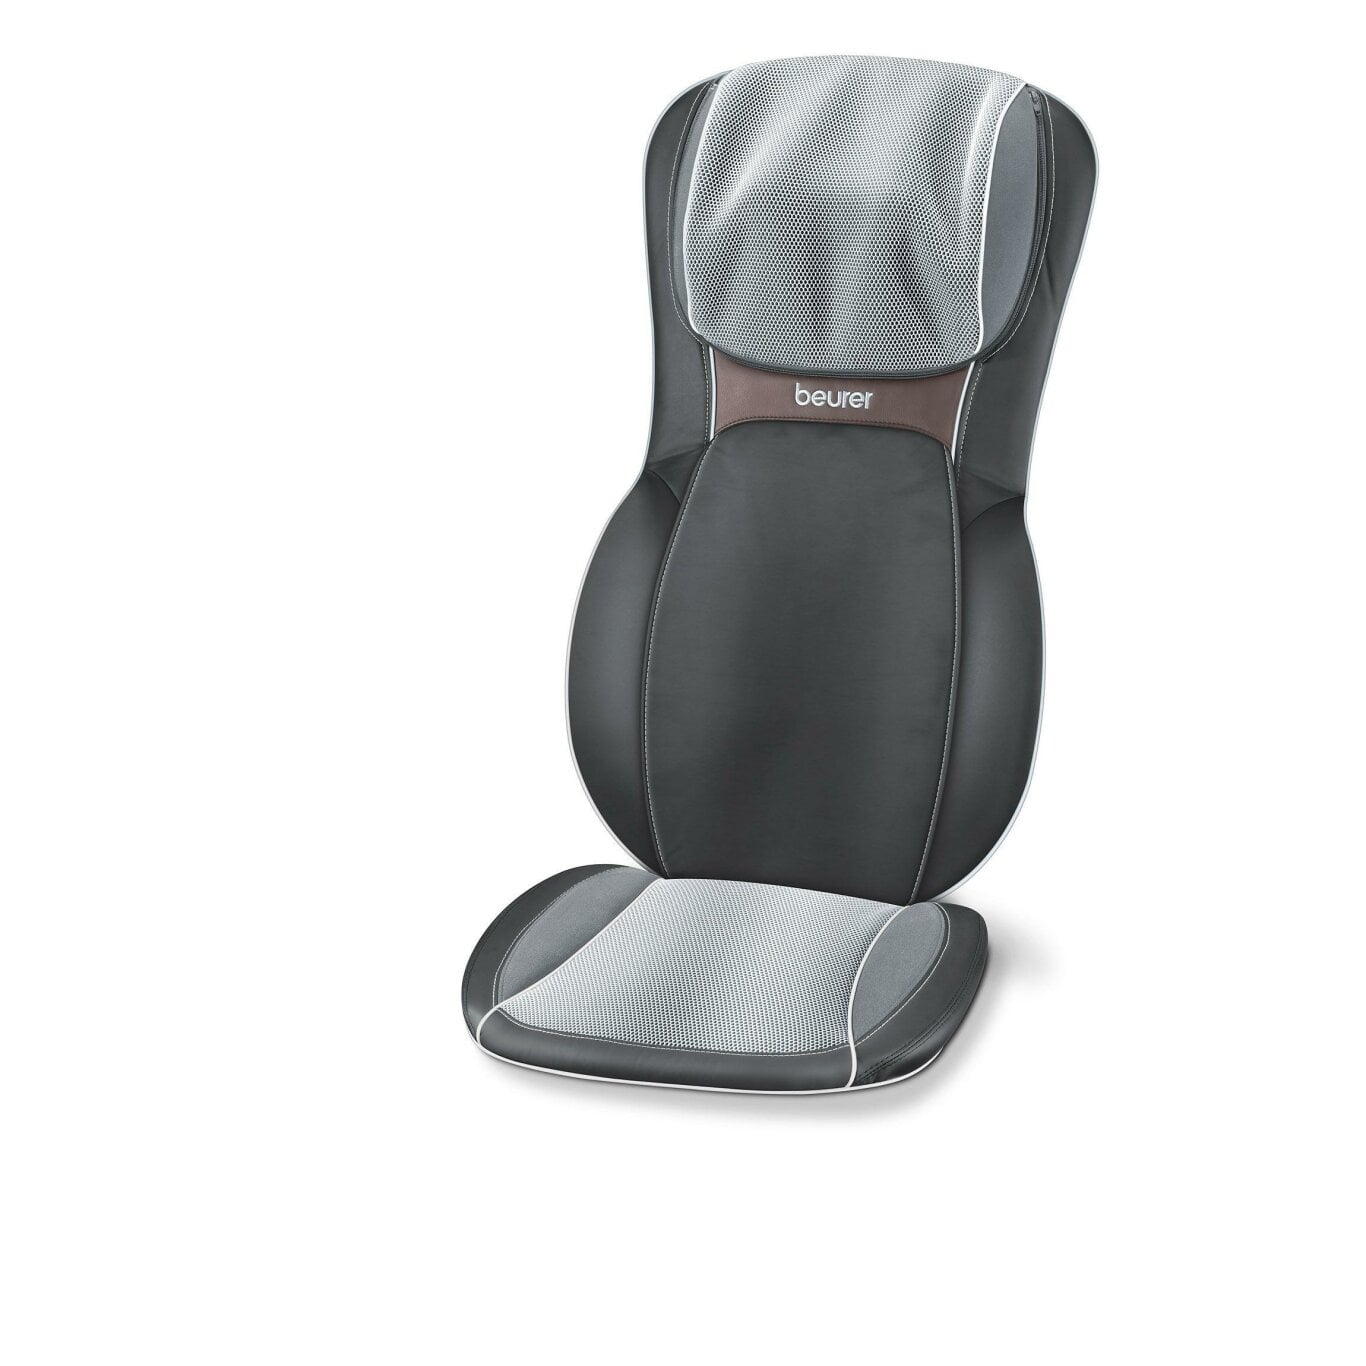 Coprisedile per massaggio shiatsu di Beurer - MG 295 - HD 3D black